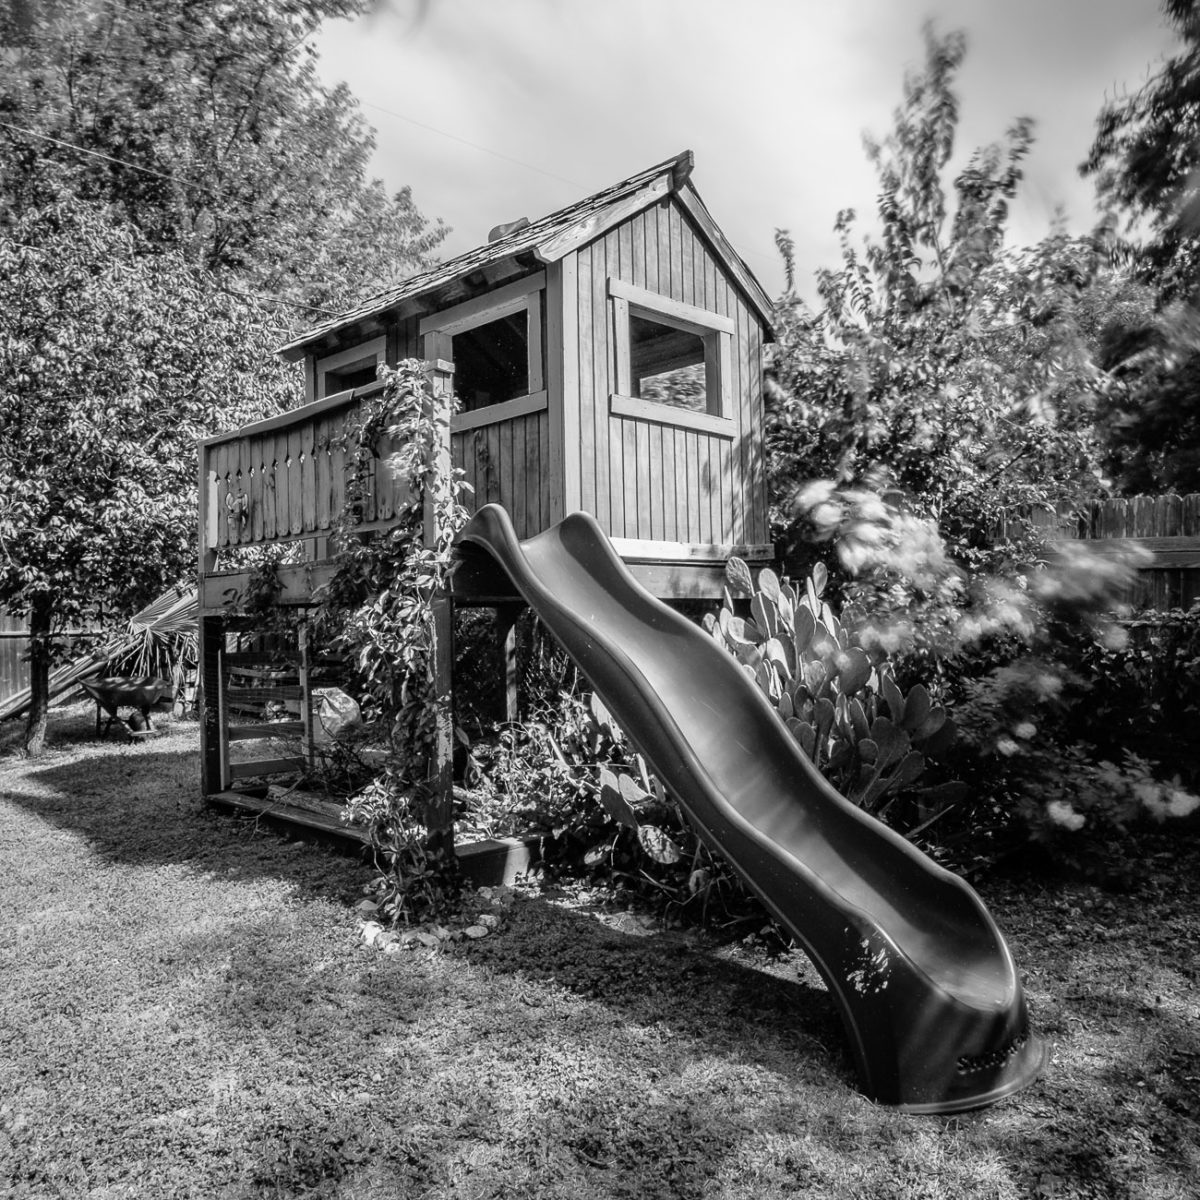 Childrens playhouse with slide - black and white photograph